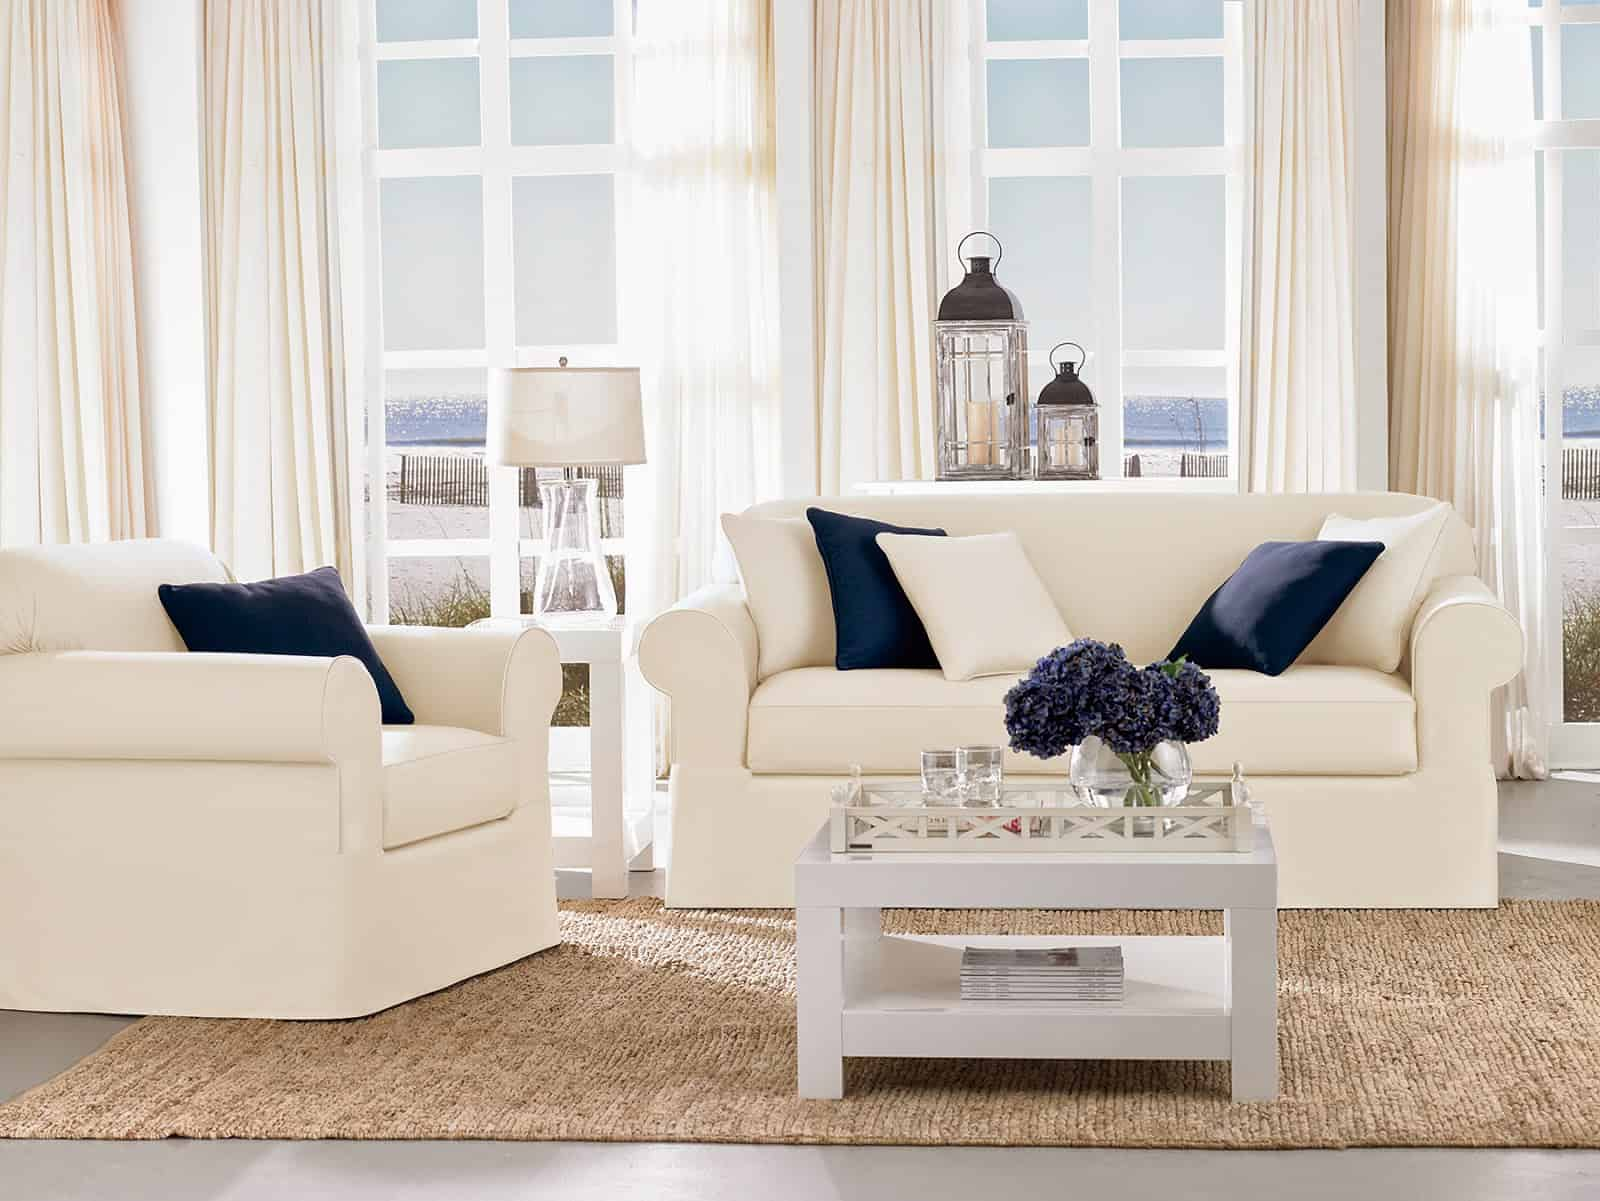 muted tones with white couches